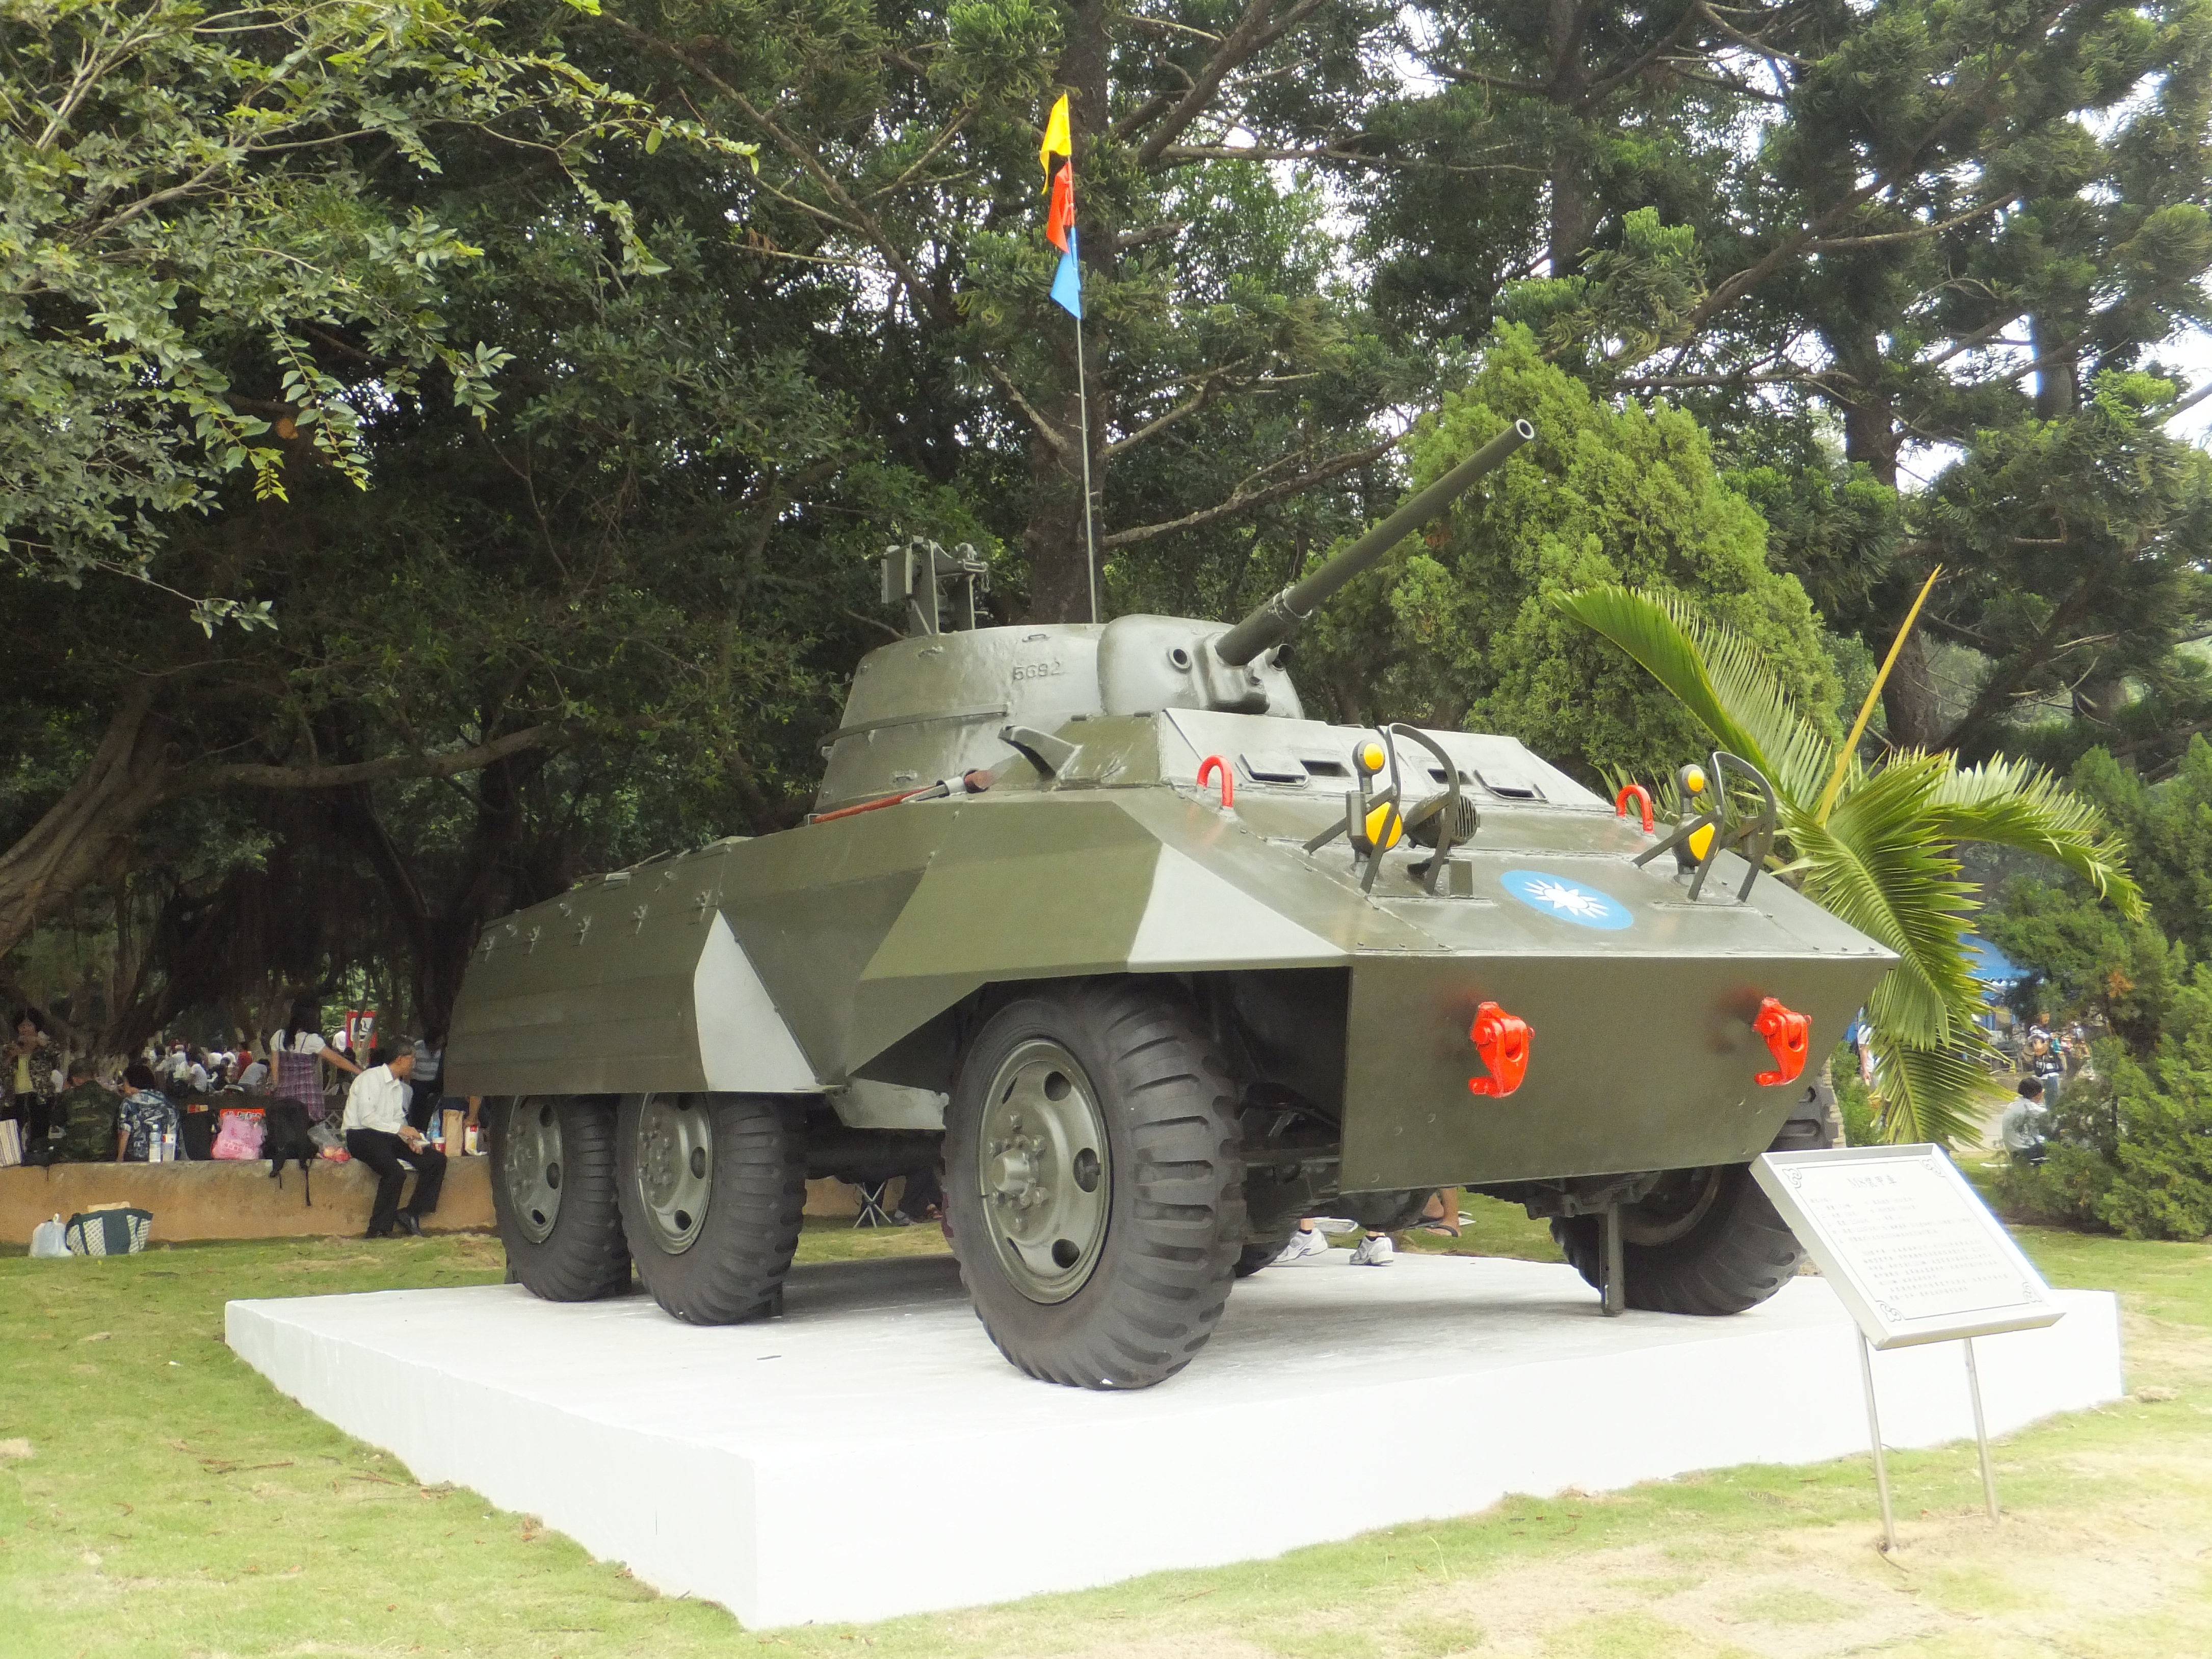 Plinthed M8 on Taiwan, with Republic of China Army (ROCA) markings.